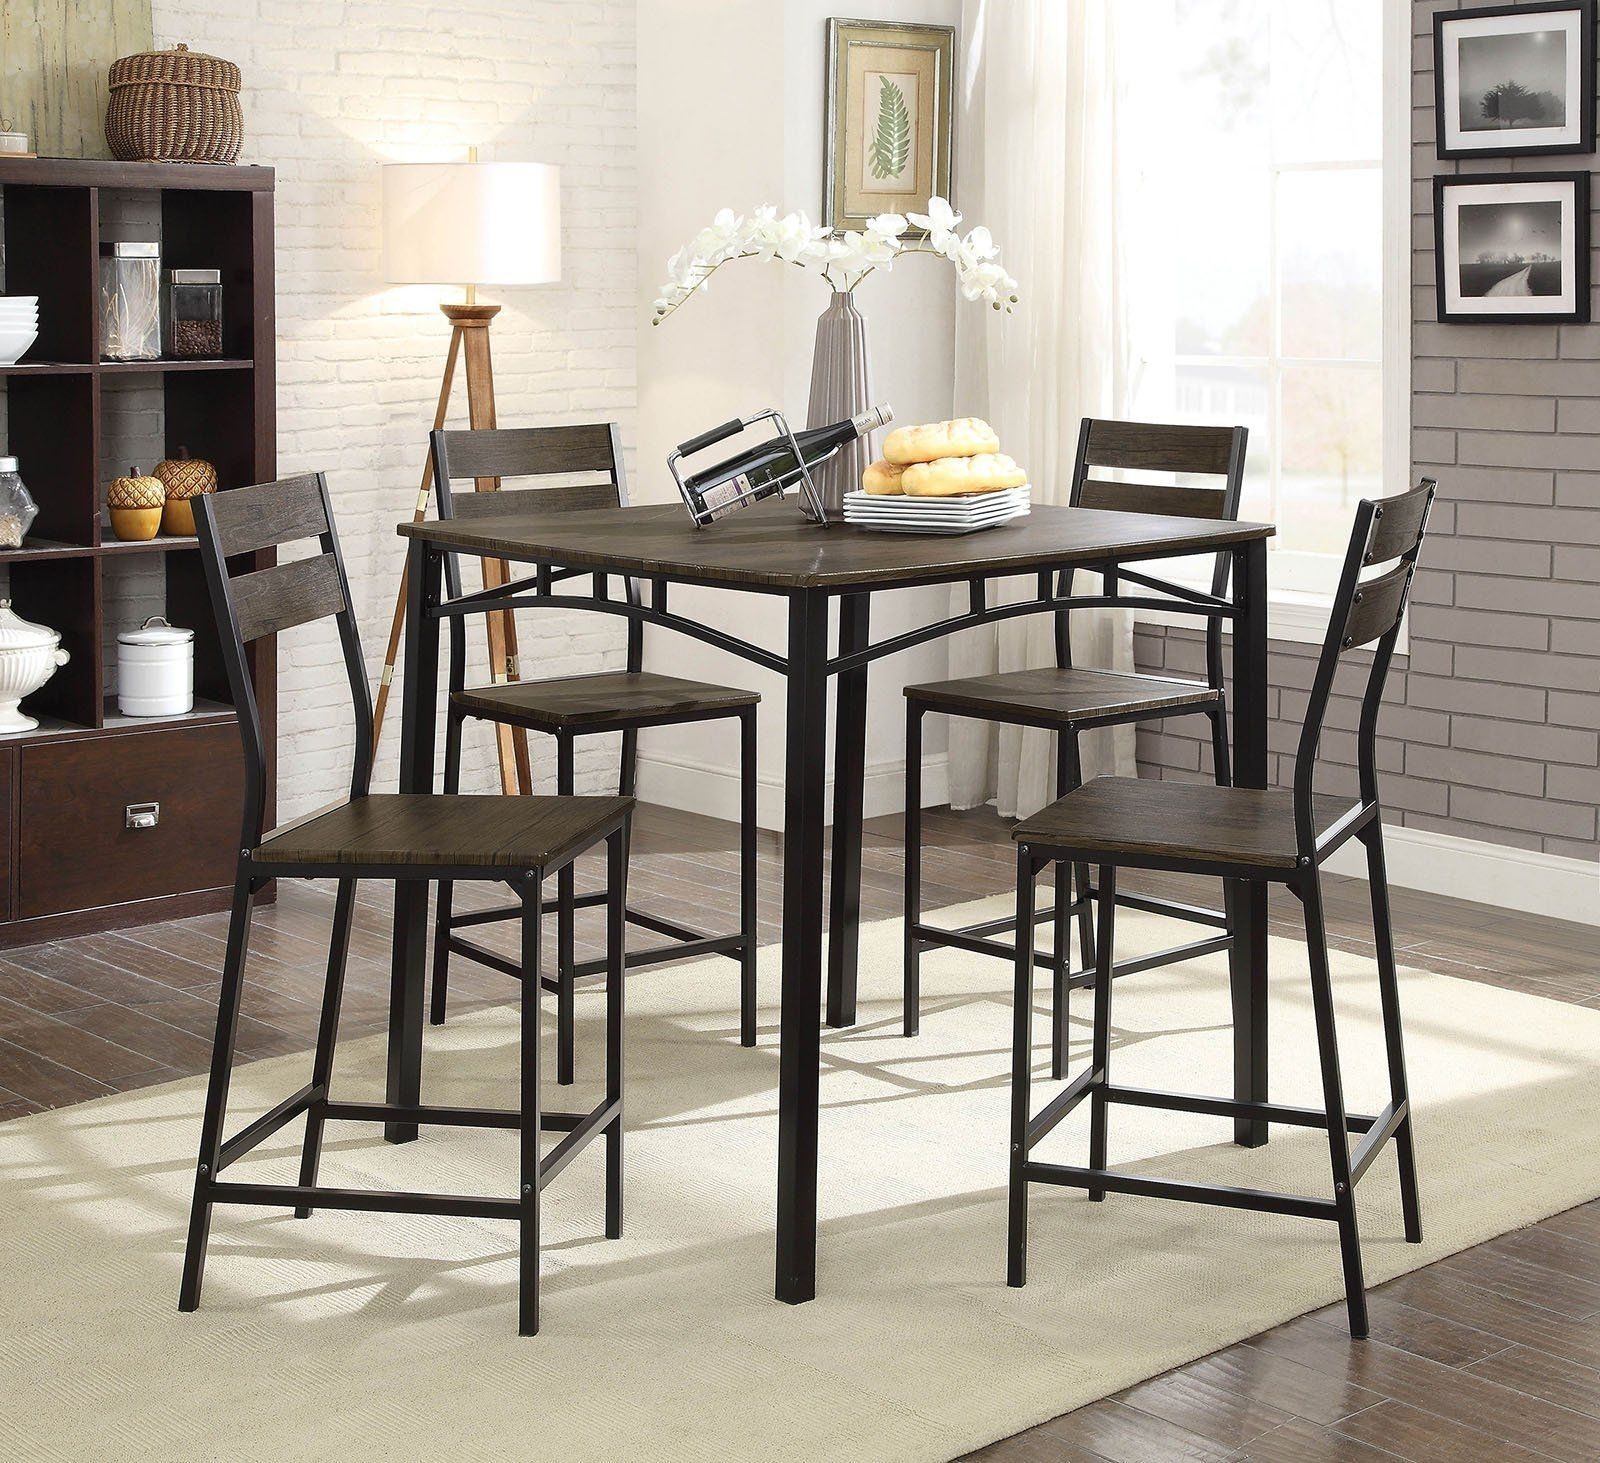 5 Piece Metal And Wood Counter Height Table Set In Antique Brown In In Recent Market 5 Piece Counter Sets (Image 4 of 20)